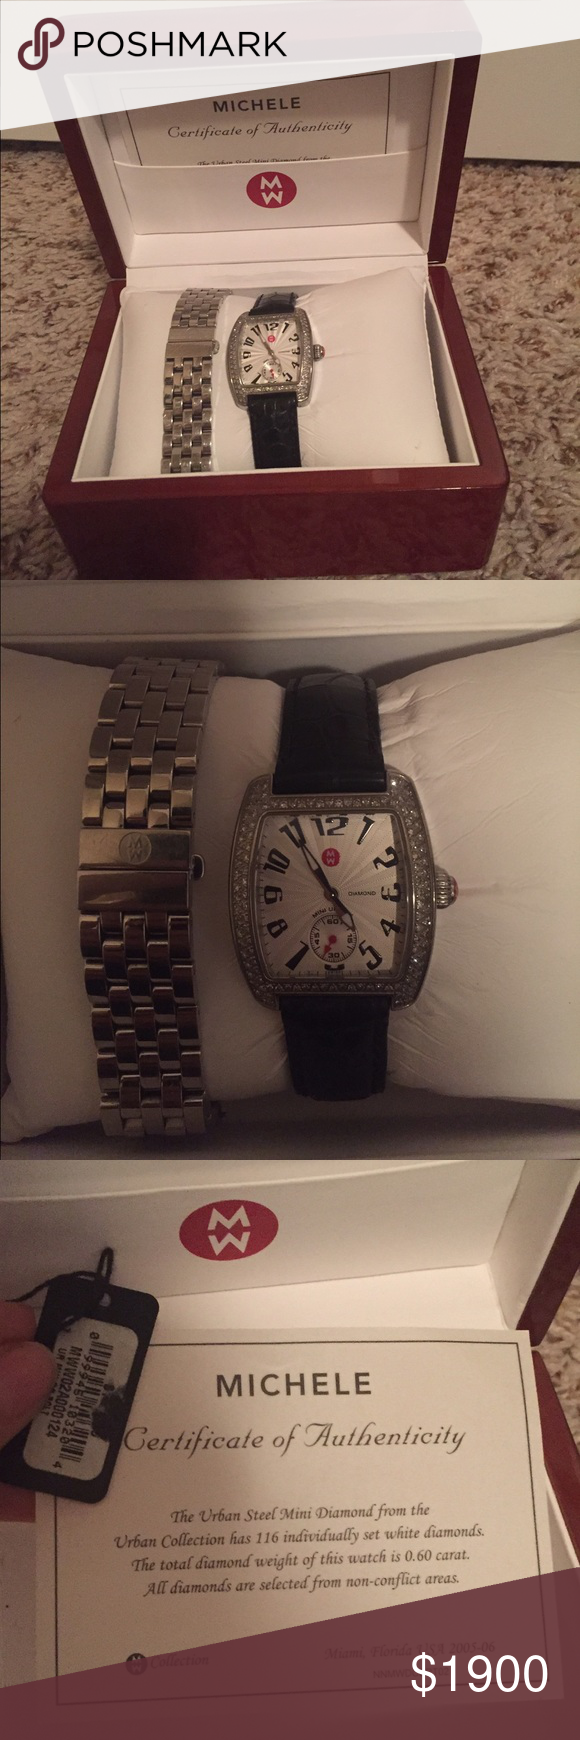 ⚡️Flash Sale⚡️Michele Mini Urban Diamond Watch Sparkling diamonds detail the barrel-shaped case&silver-white guilloche dial of the Urban Mini Diamond watch. Comes with the black alligator strap&stainless steel 5-link strap. Comes with box, authenticity card & tag. No scratches on watch face, some slight scratches on the stainless steel strap but it's hardly noticeable. TV:$2,000▪️Case Size-29mmx31 mm▪️Dial-Silver White Guilloche W/Diamonds ▪️Strap Size -16mm▪️Crystal Type -Sapphire ▪️Total…